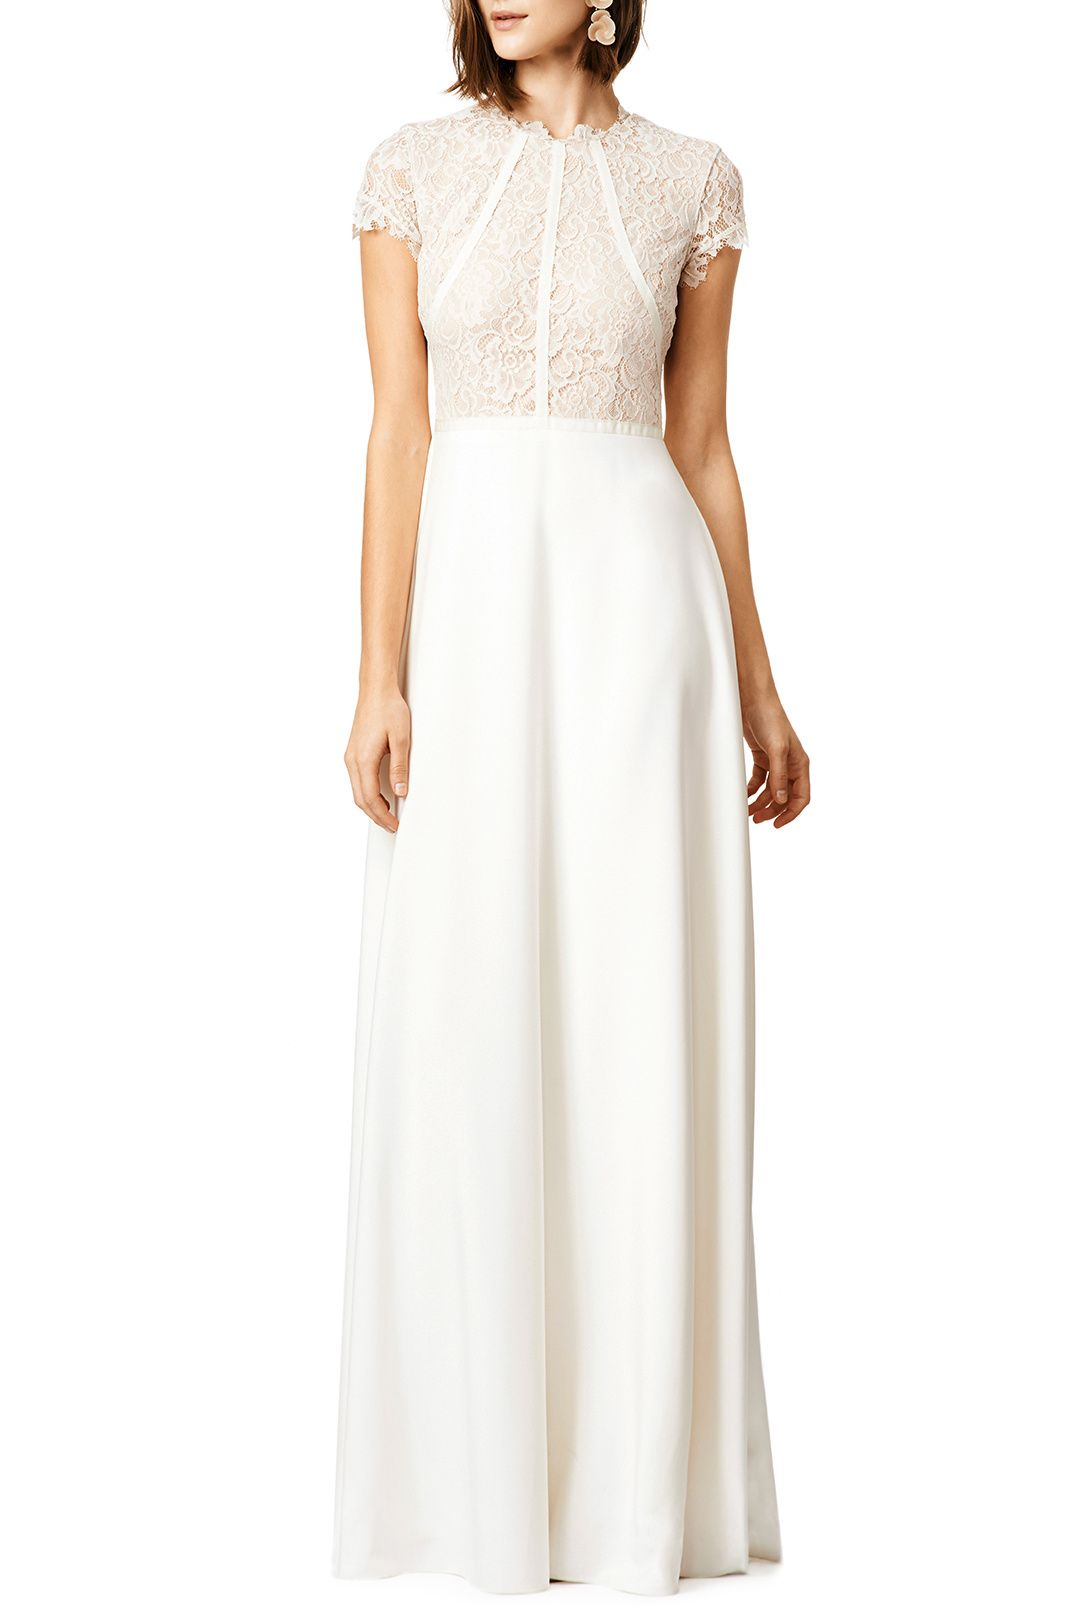 Renting wedding dresses  Amber Gown  Amber Gowns and Wedding dress